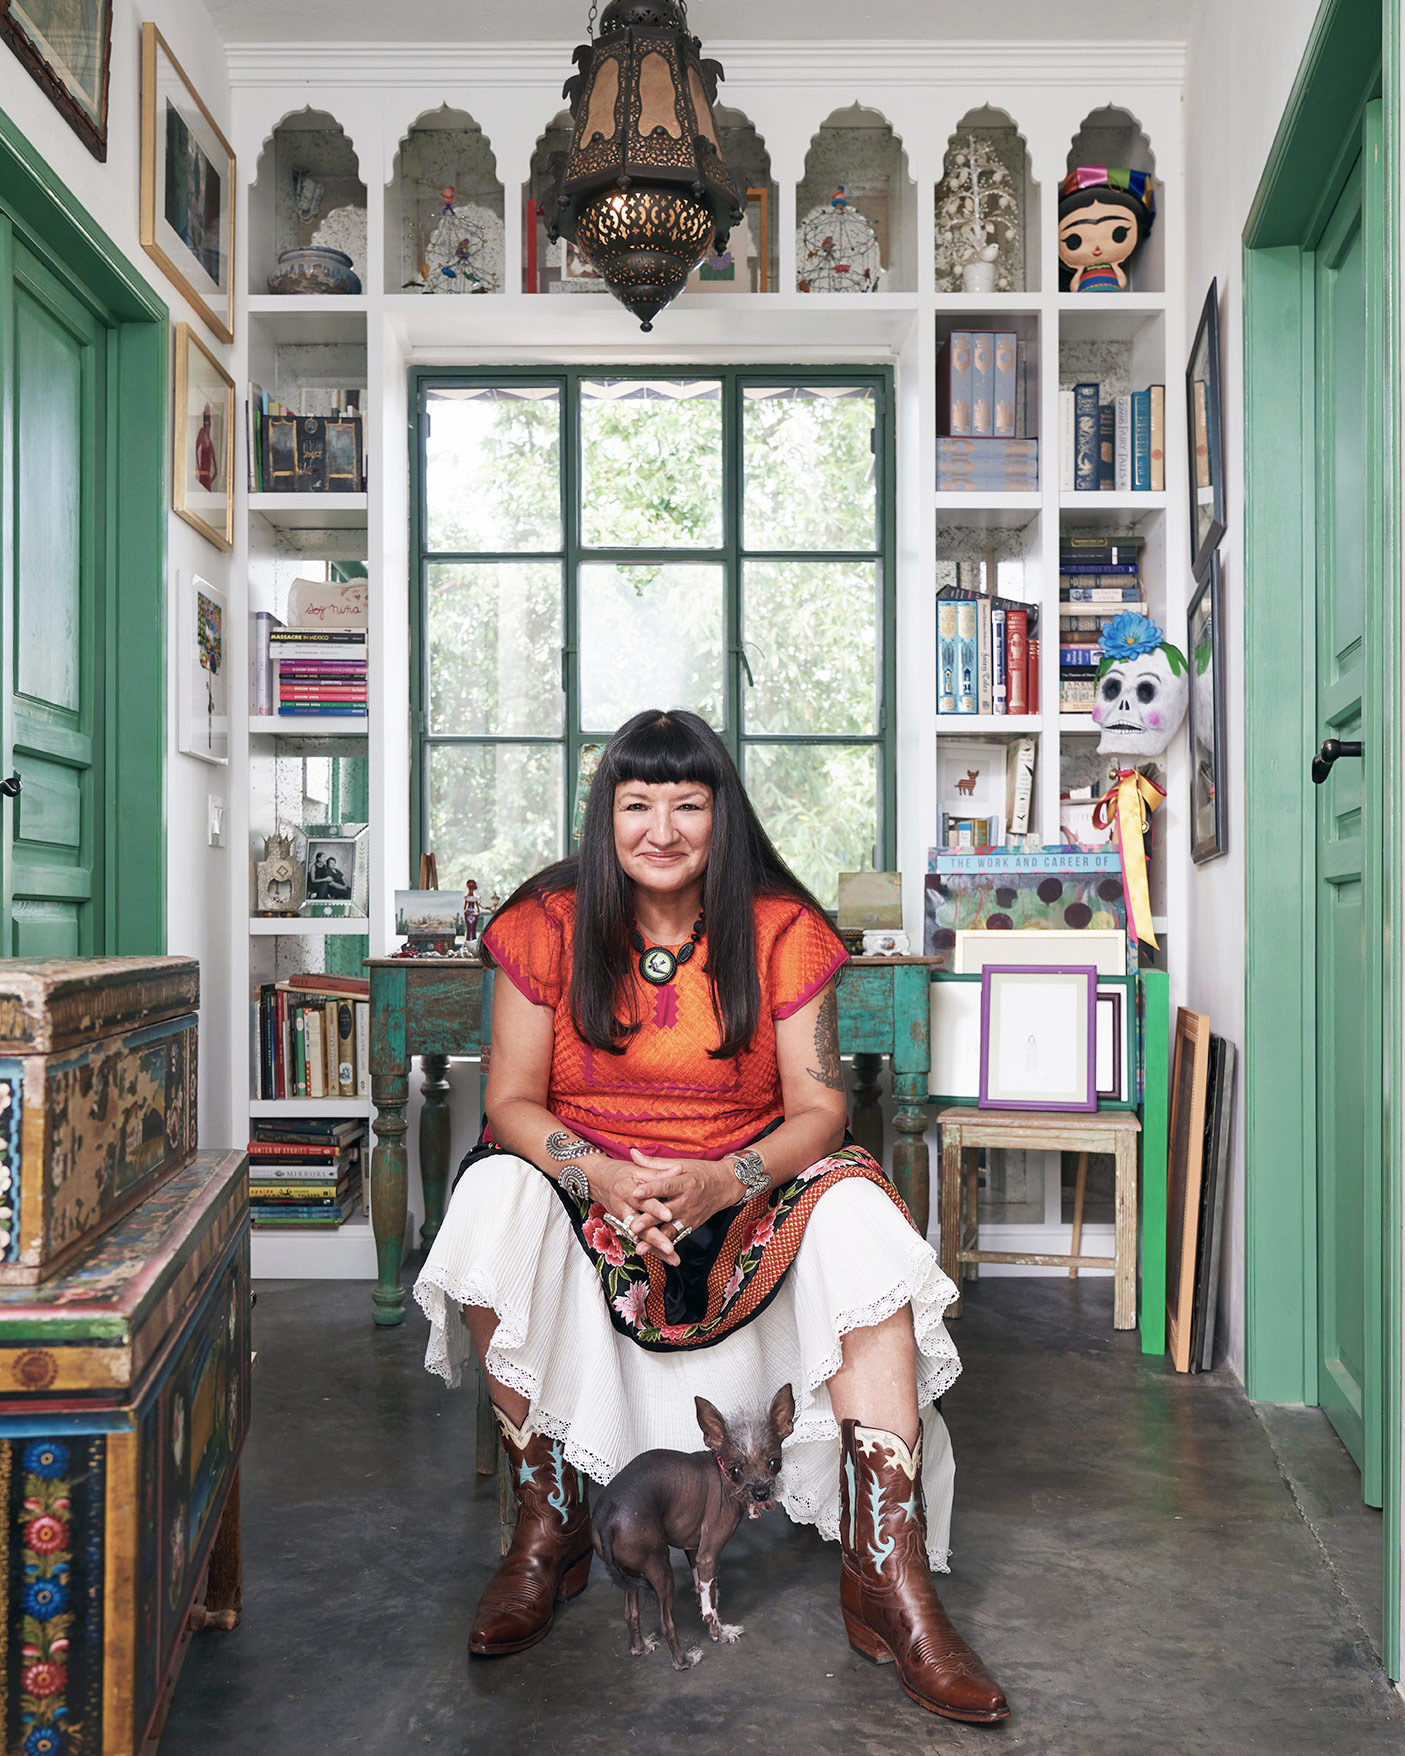 20191010_SandraCisneros_TexasMonthly2605